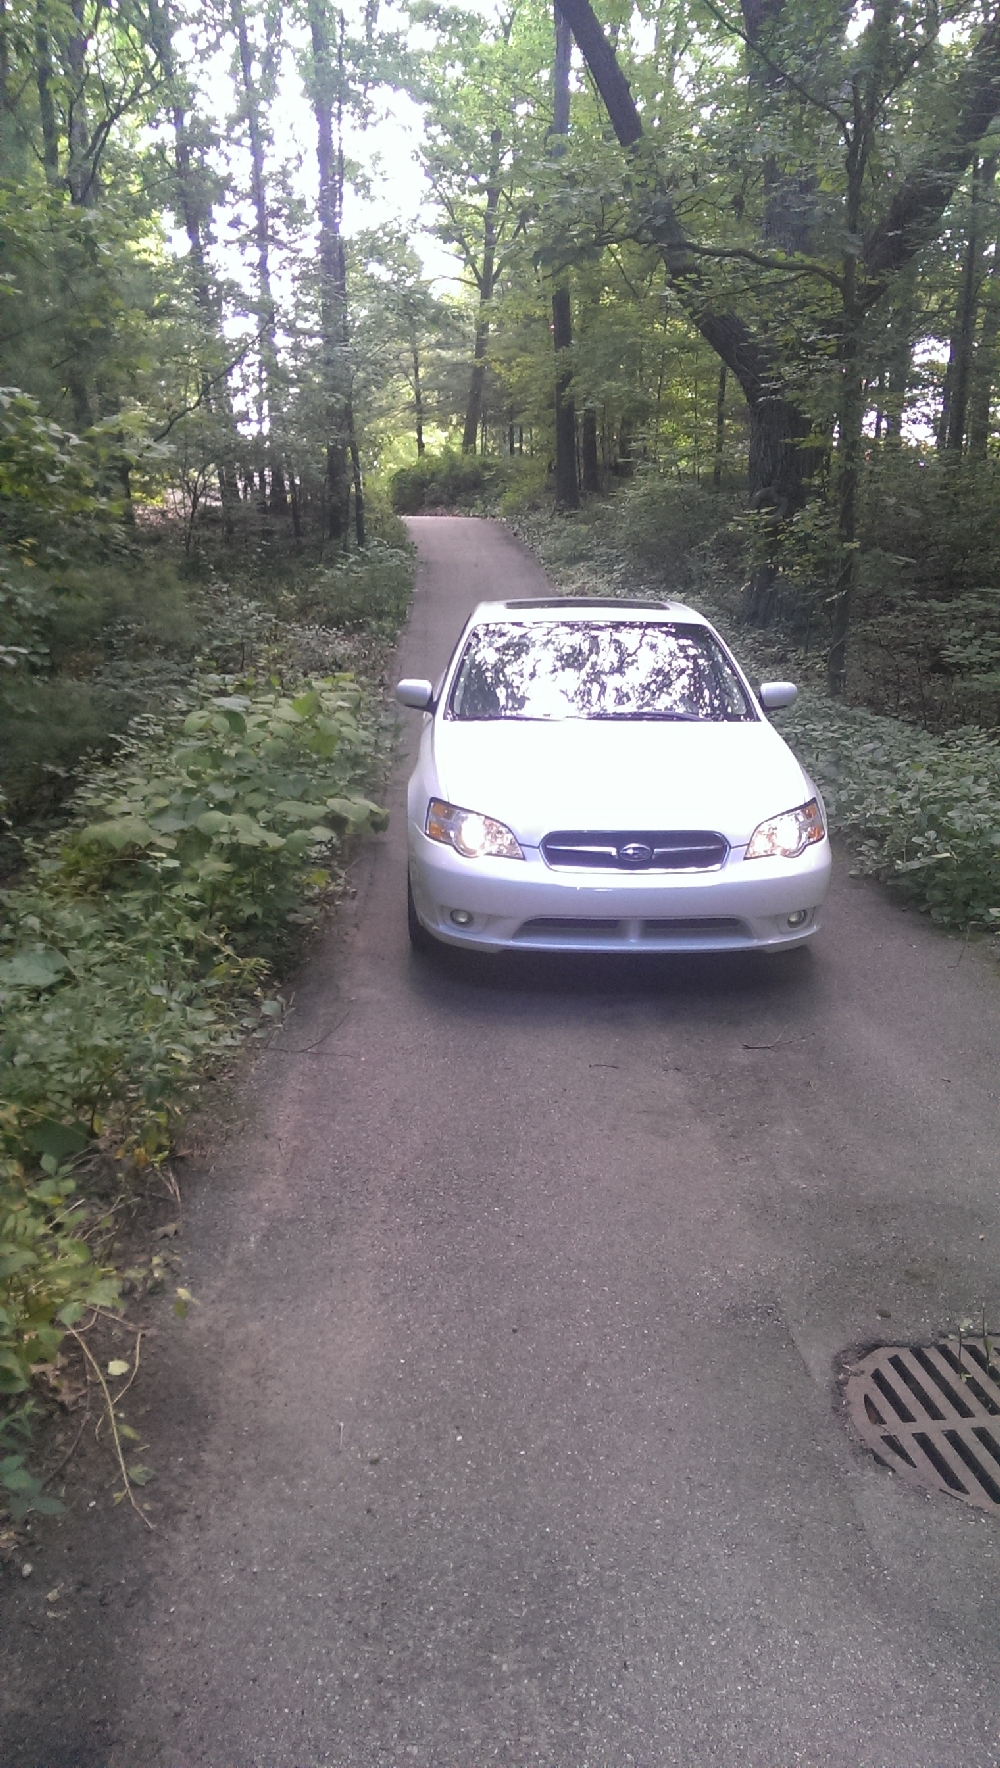 Yard - drain and Easterly view of paved driveway with Subaru